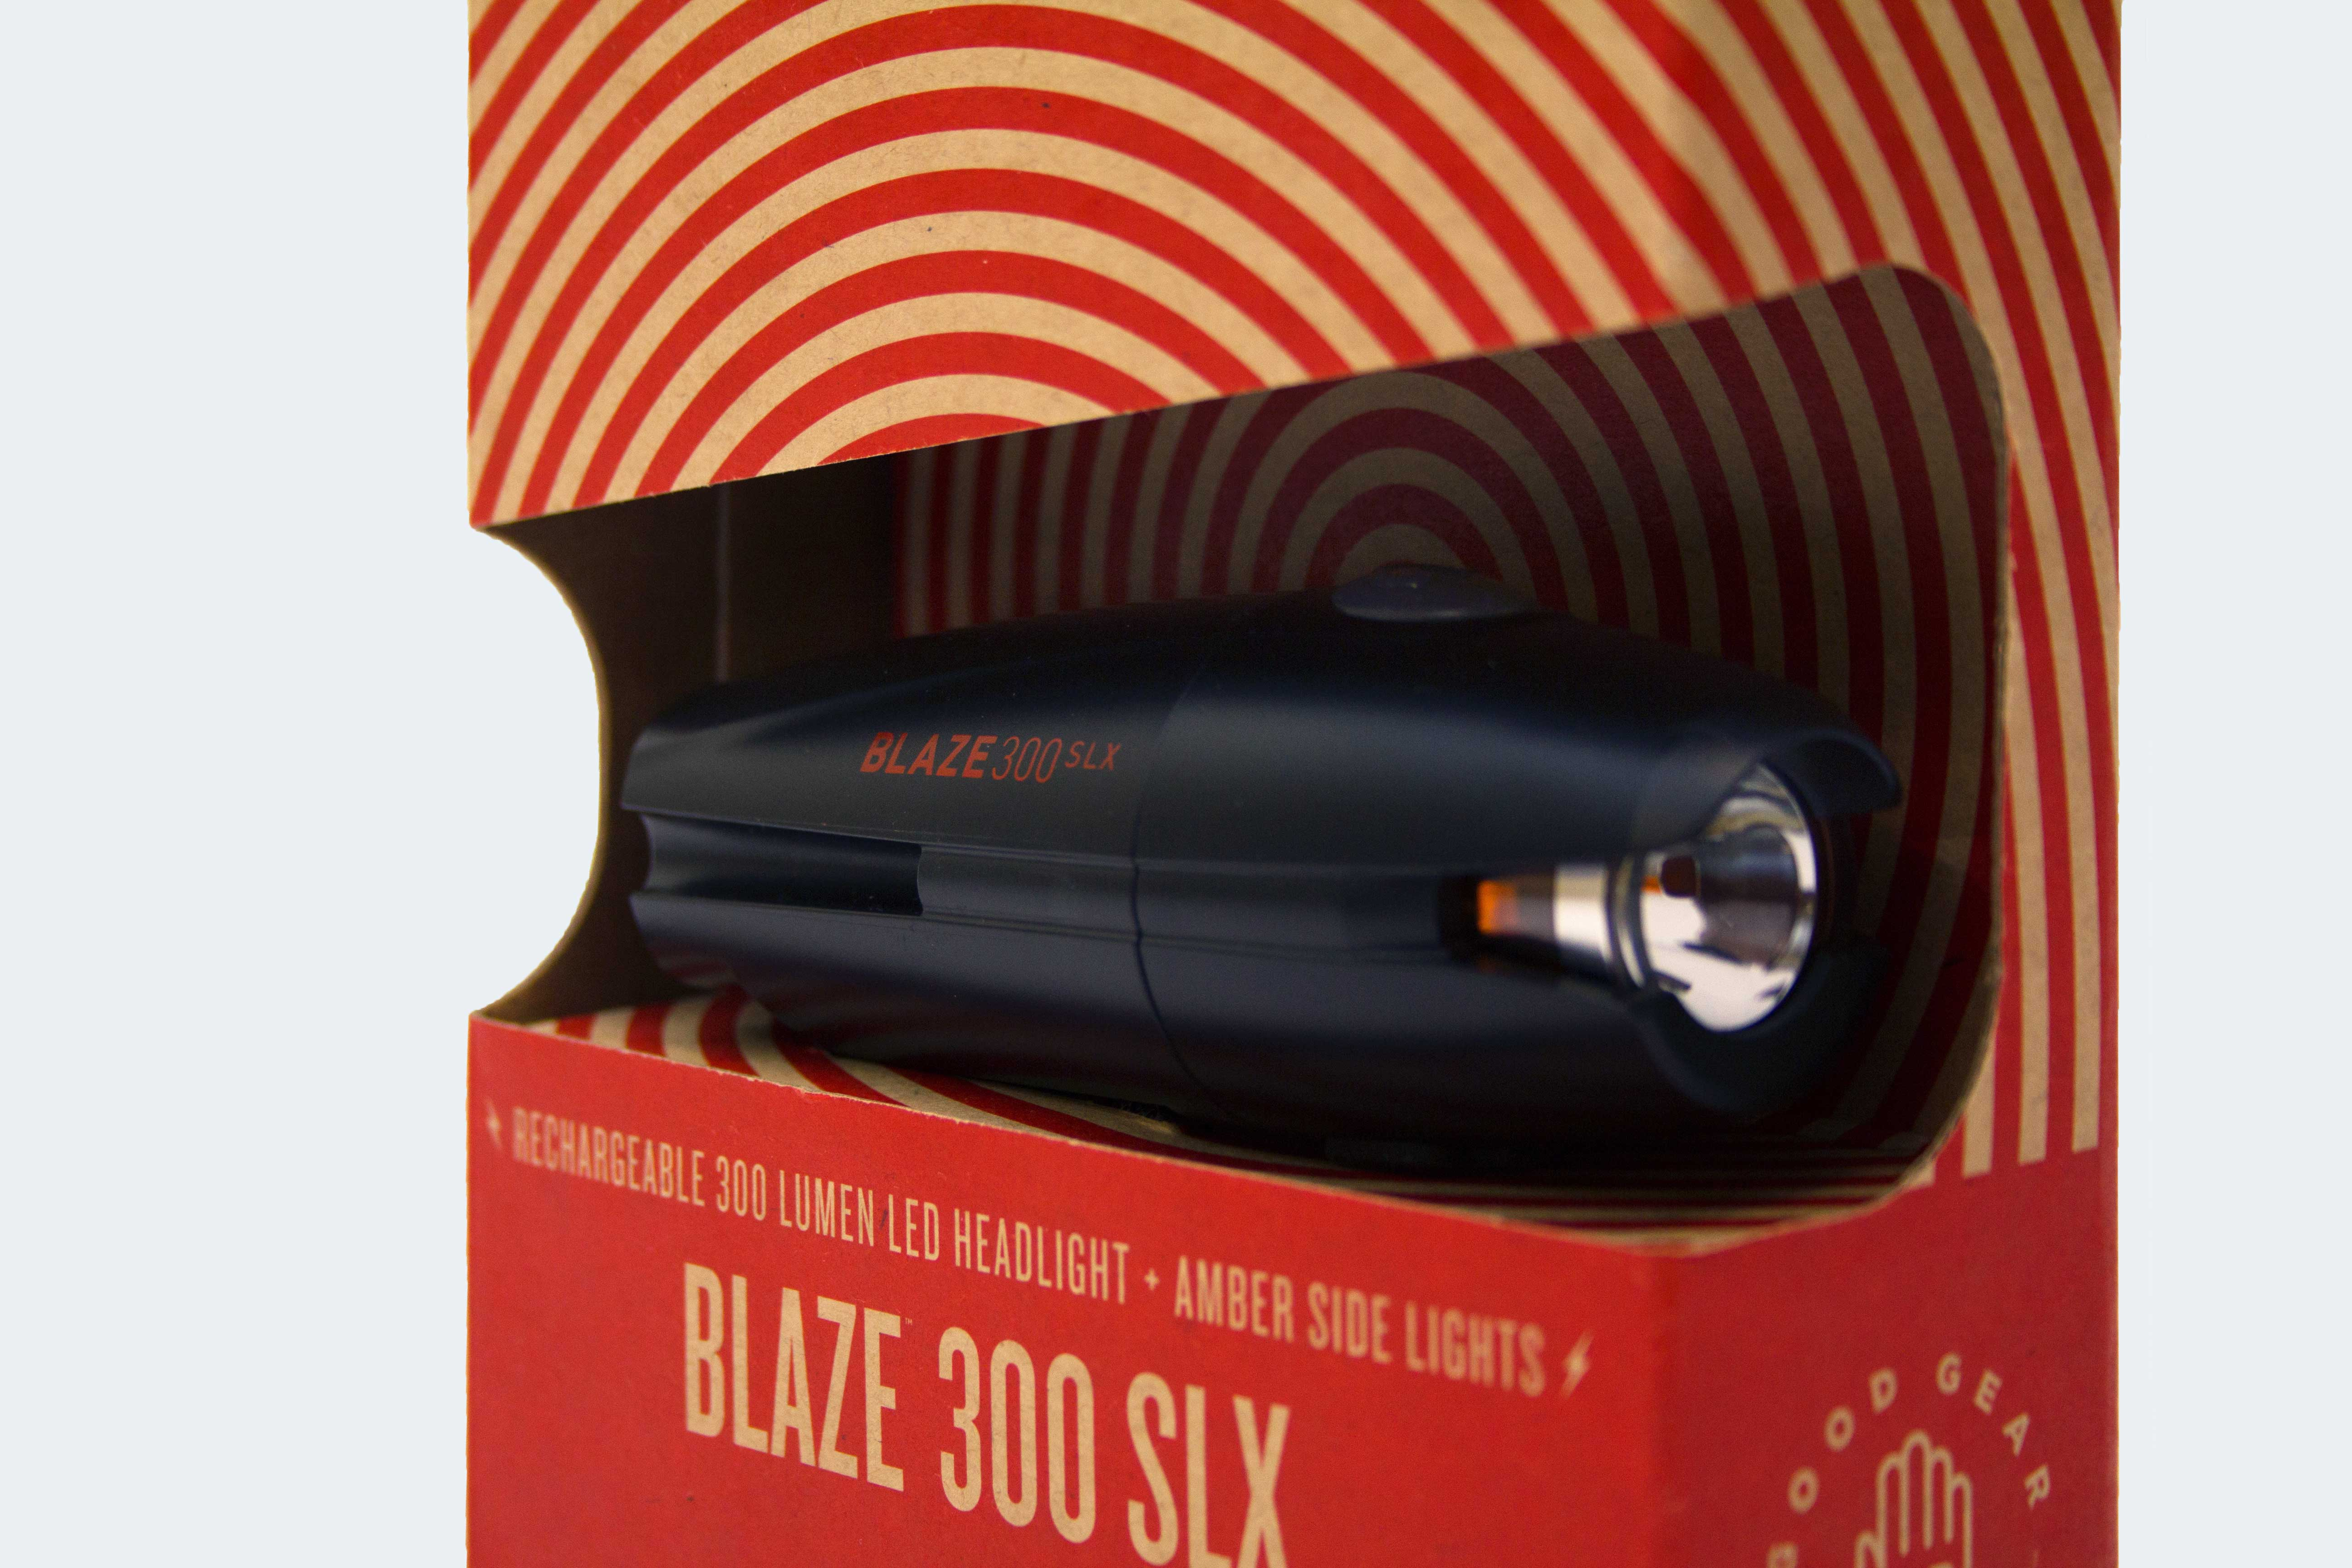 The Blaze 300 SLX features industrial design by bb7 and is manufactured and sold by Planet Bike.